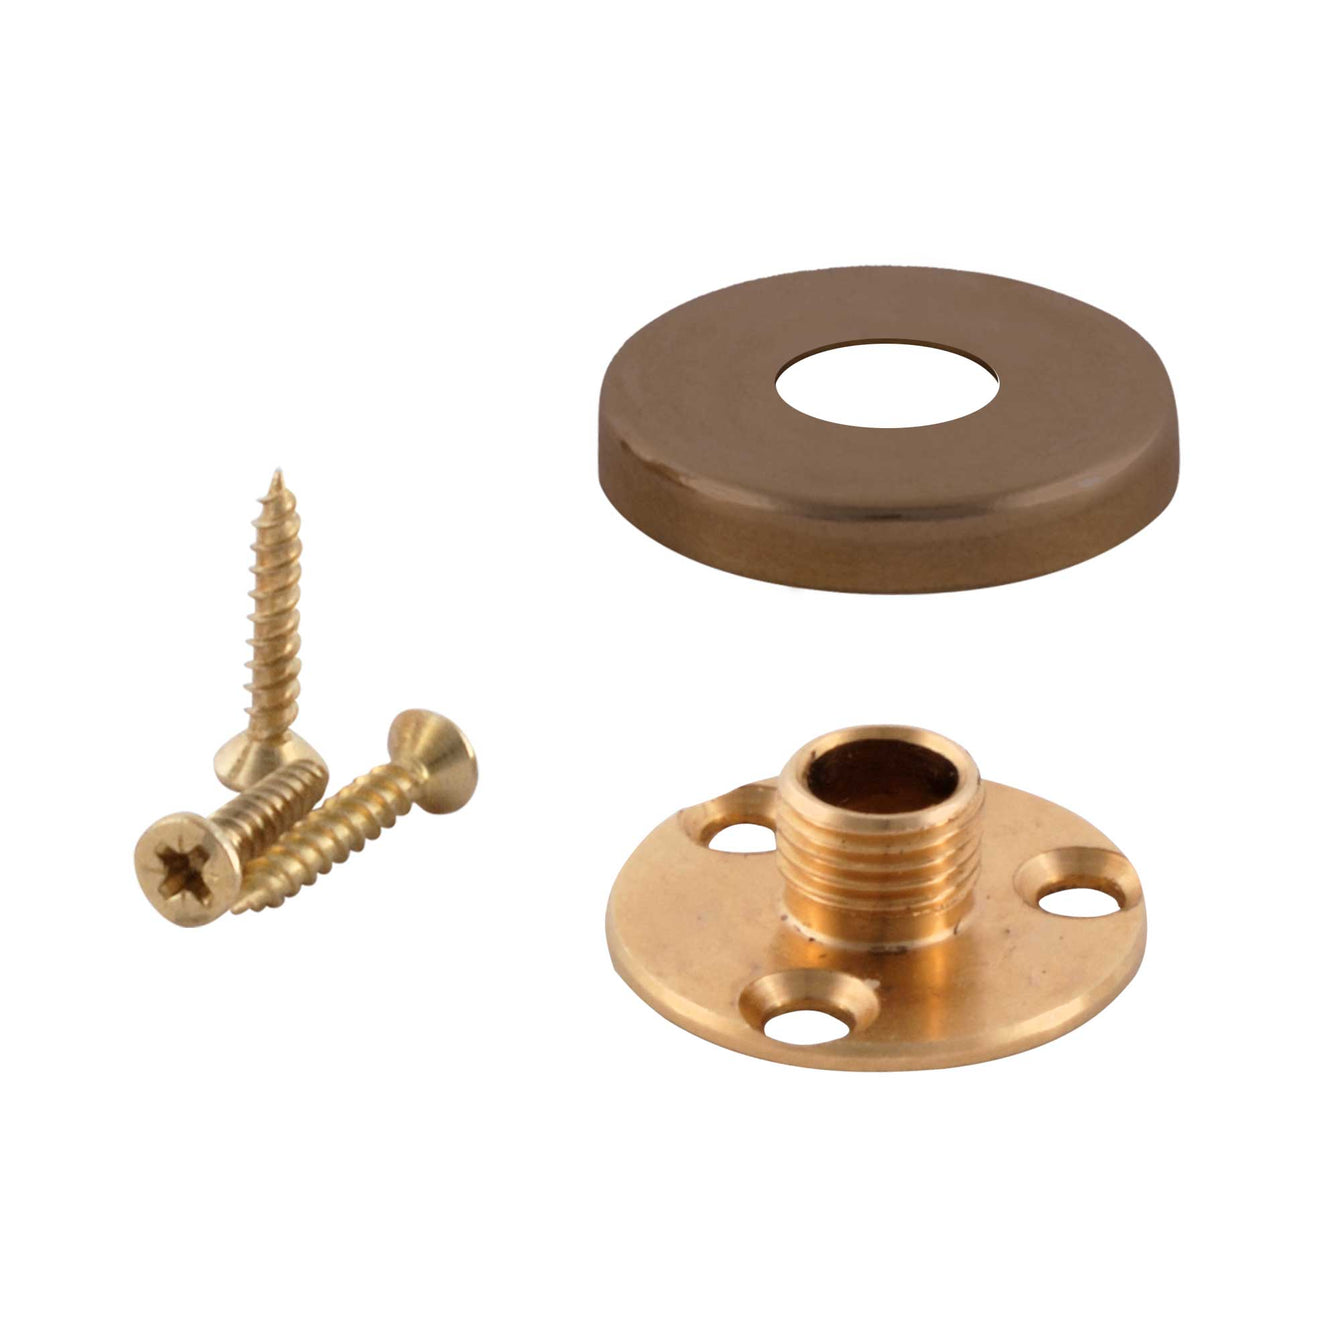 ElekTek Brass Back Plate Kit - 10mm Male Thread and Screws with Cover - For use with E27 10mm Lampholder Nickel